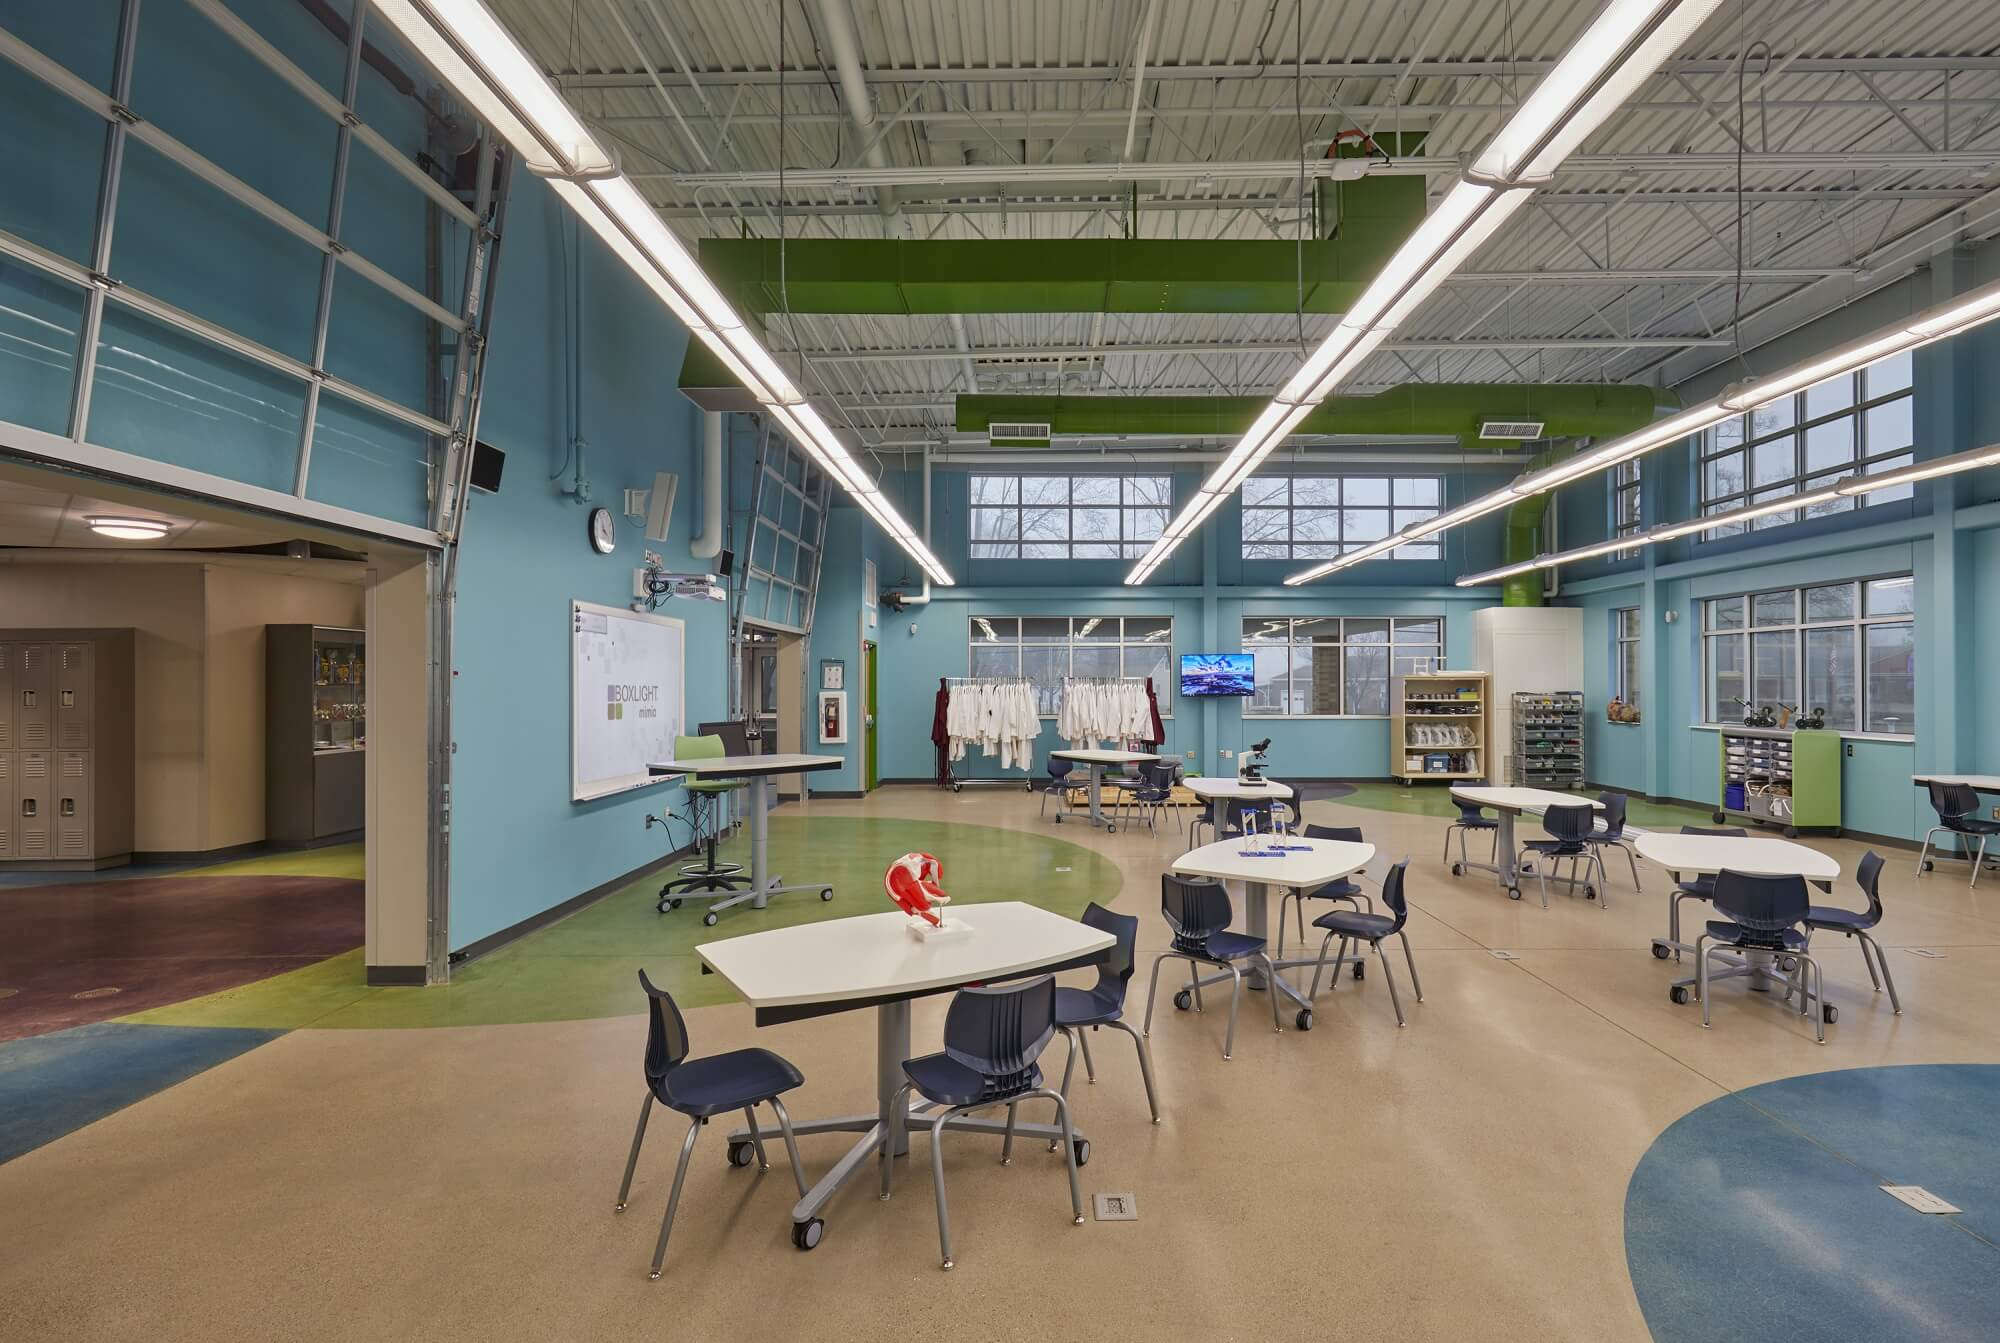 Warsaw School's STEM lab